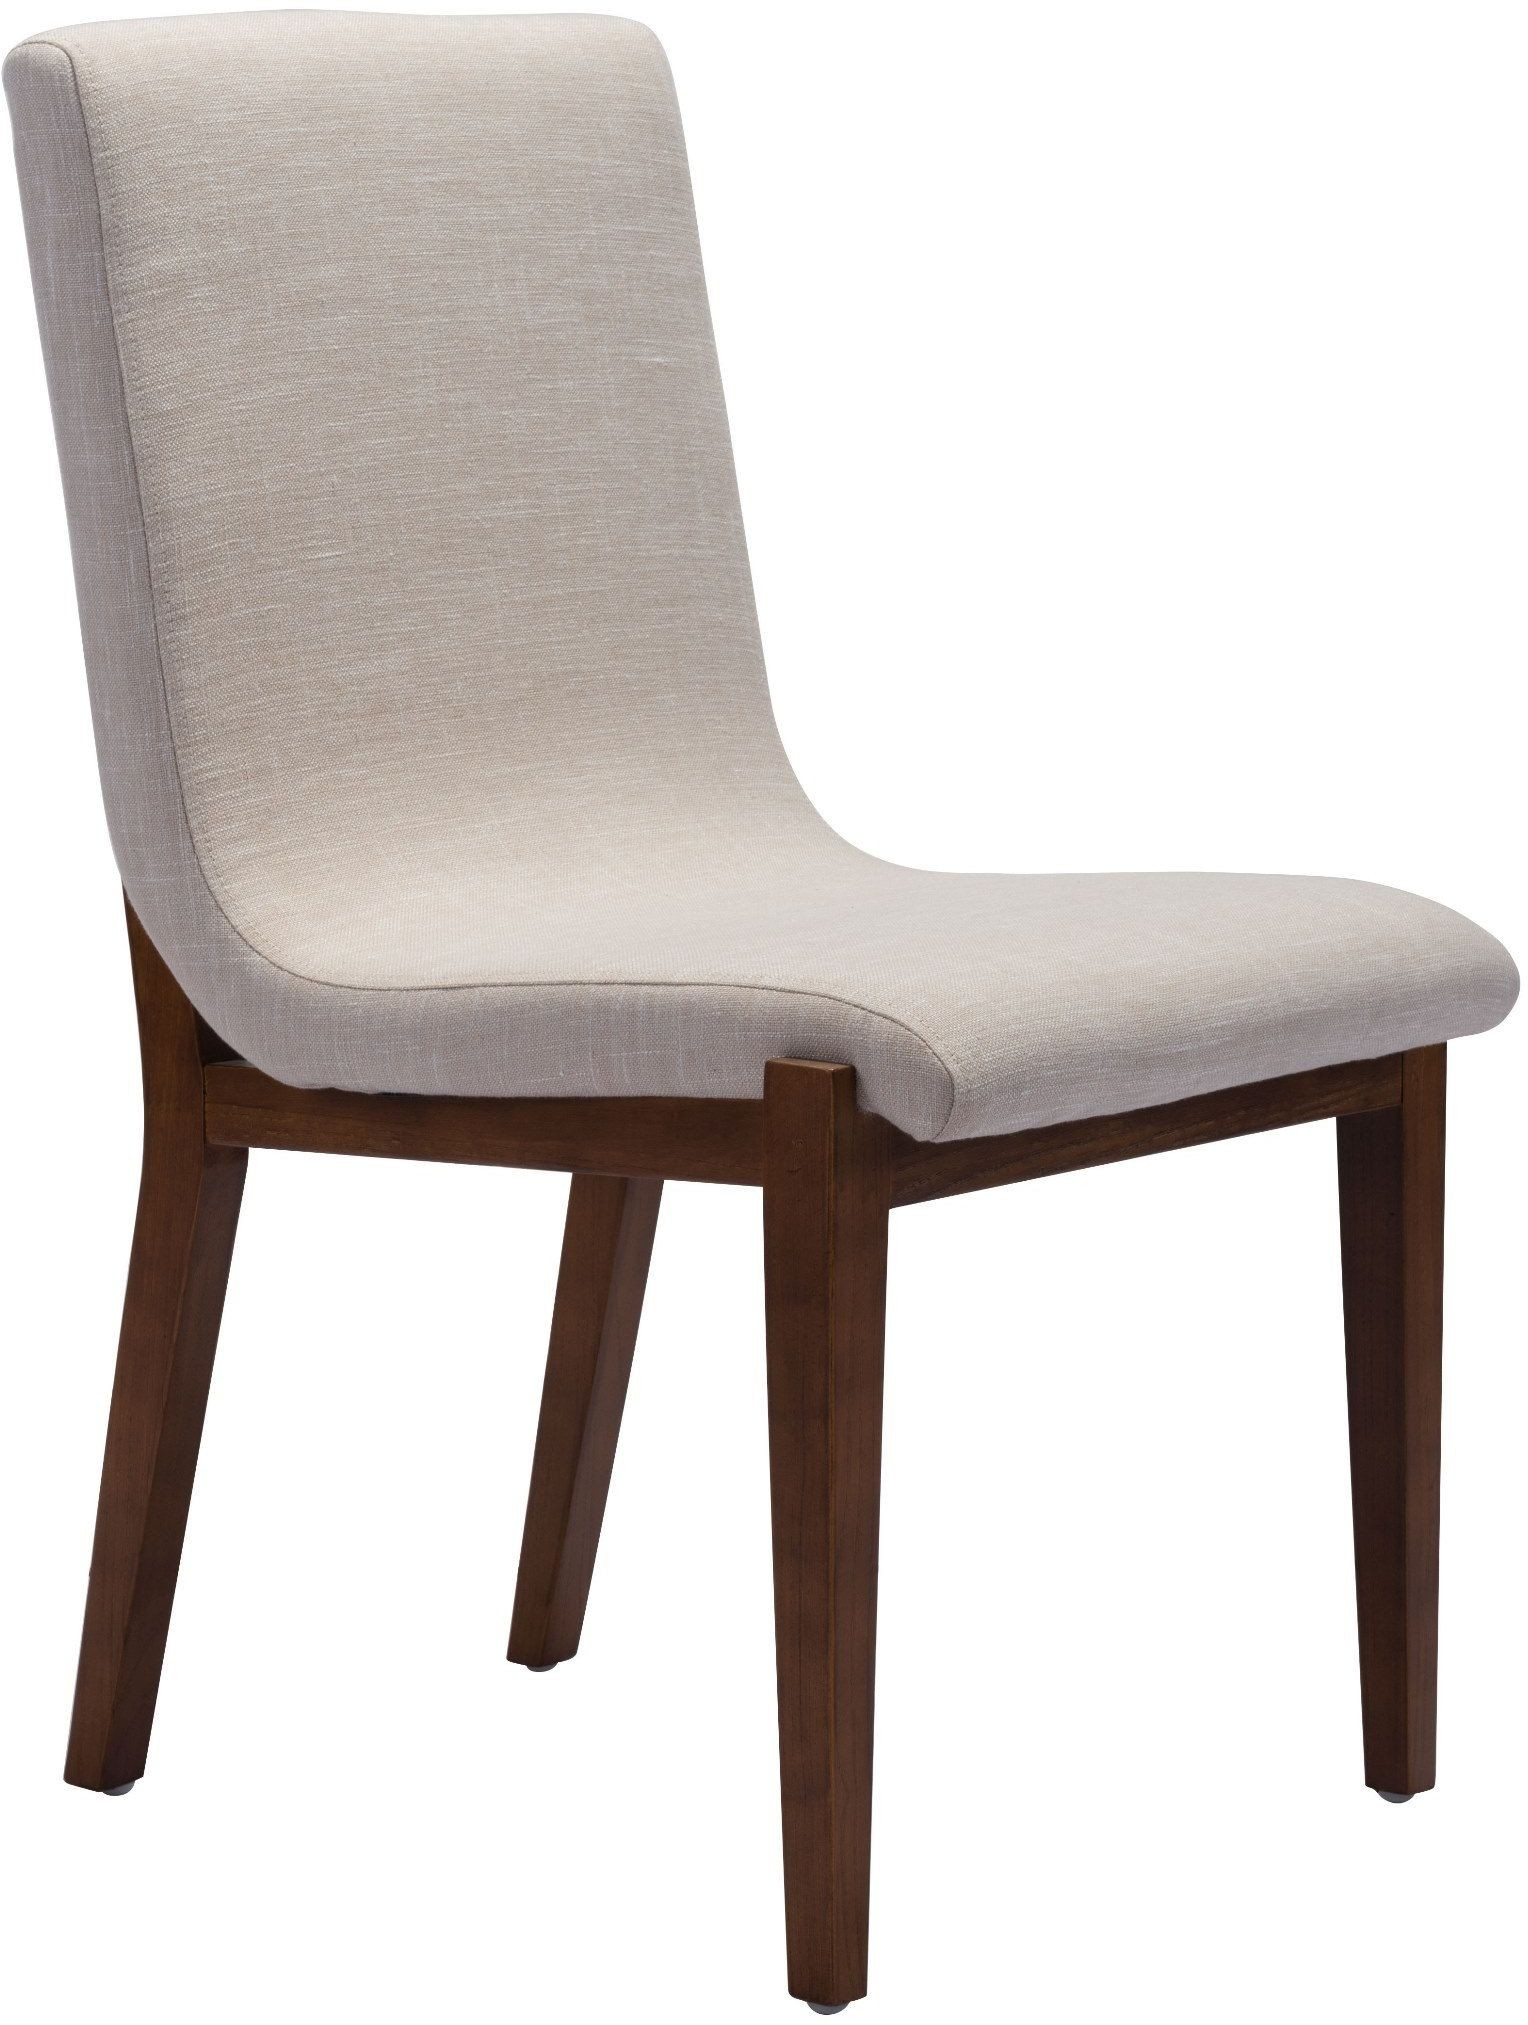 Hamilton Beige Dining Chair Set Of 2 From Zuo Coleman